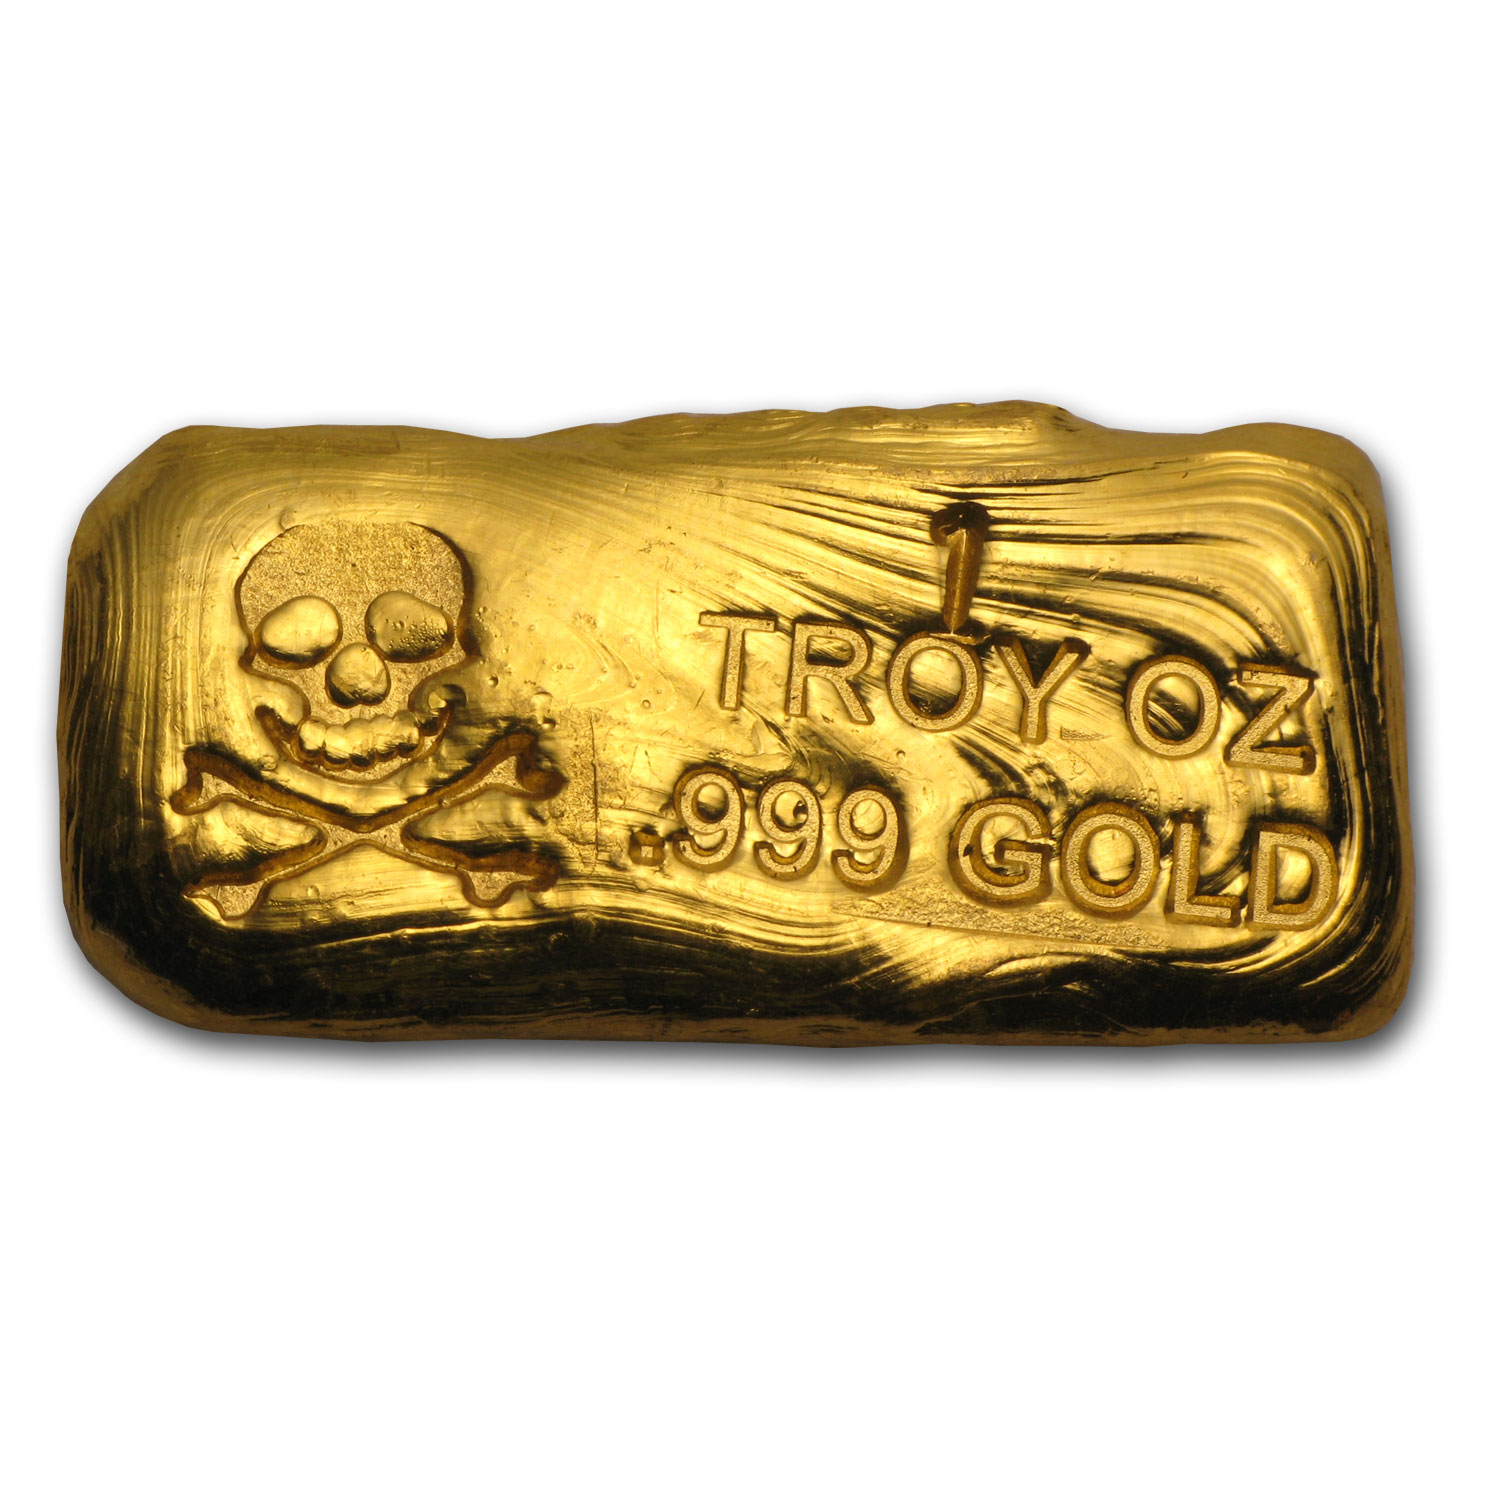 1 oz Gold Bar - Skull & Bones (PG&G)